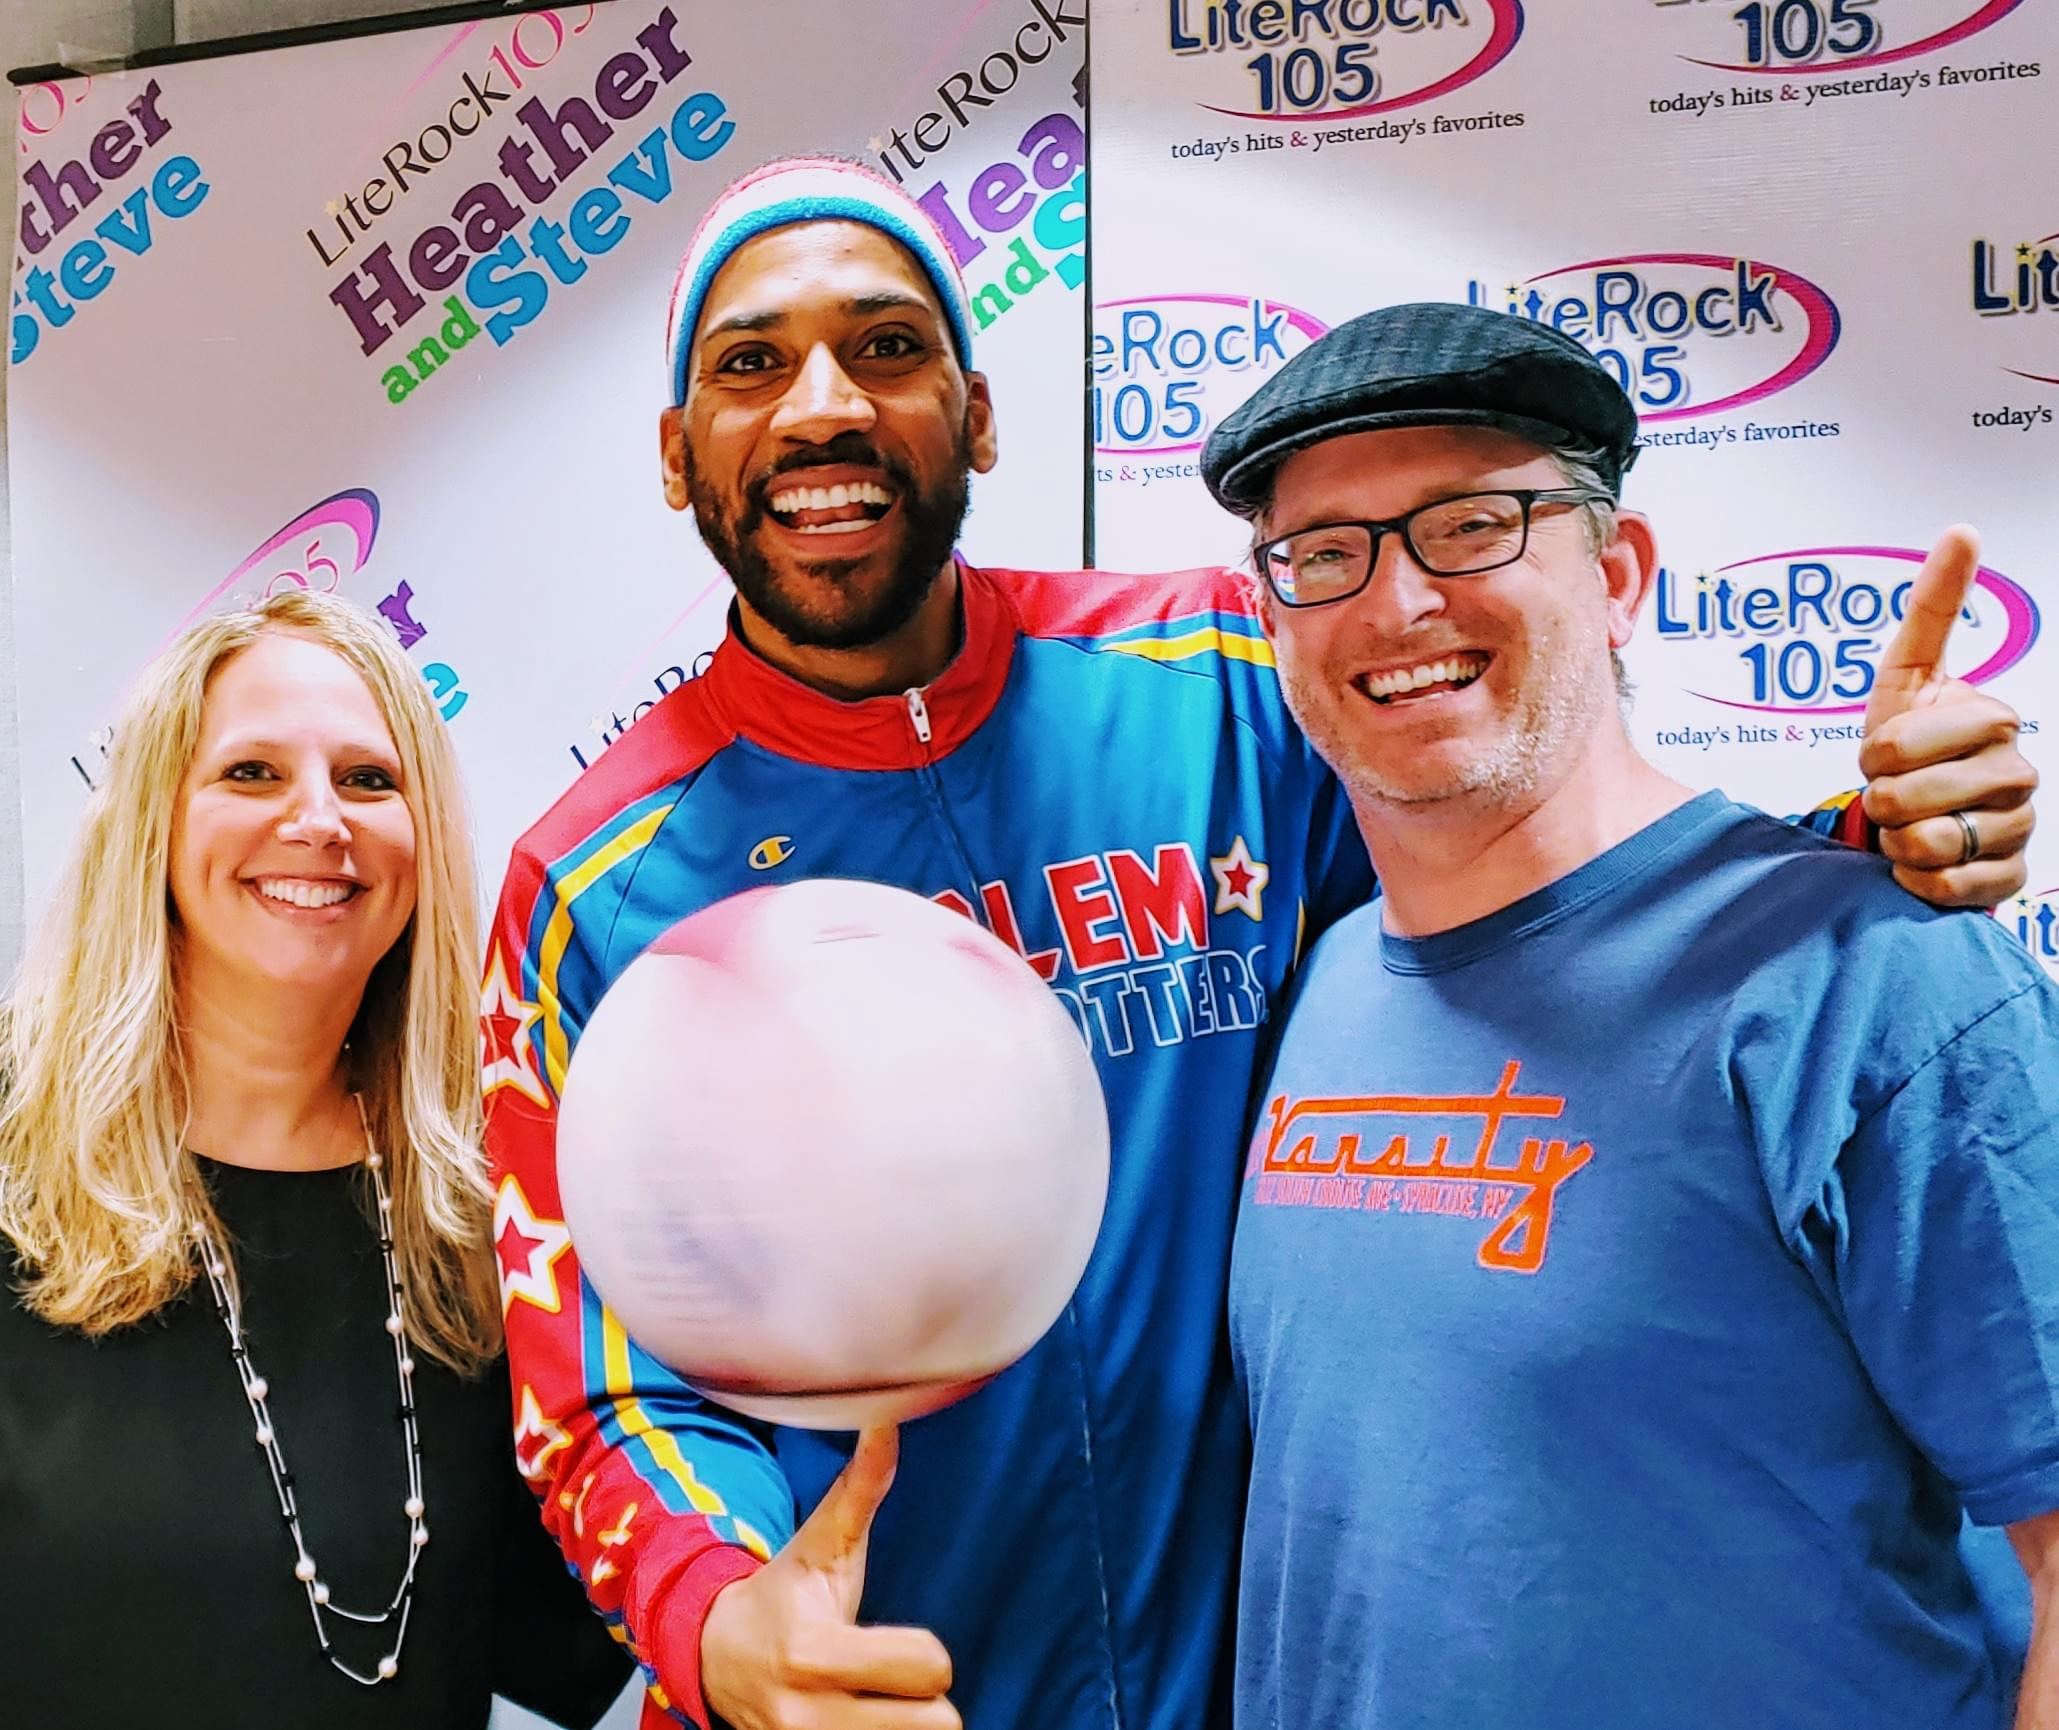 ZEUS from the HARLEM GLOBETROTTERS with Lite Rock 105's Heather & Steve